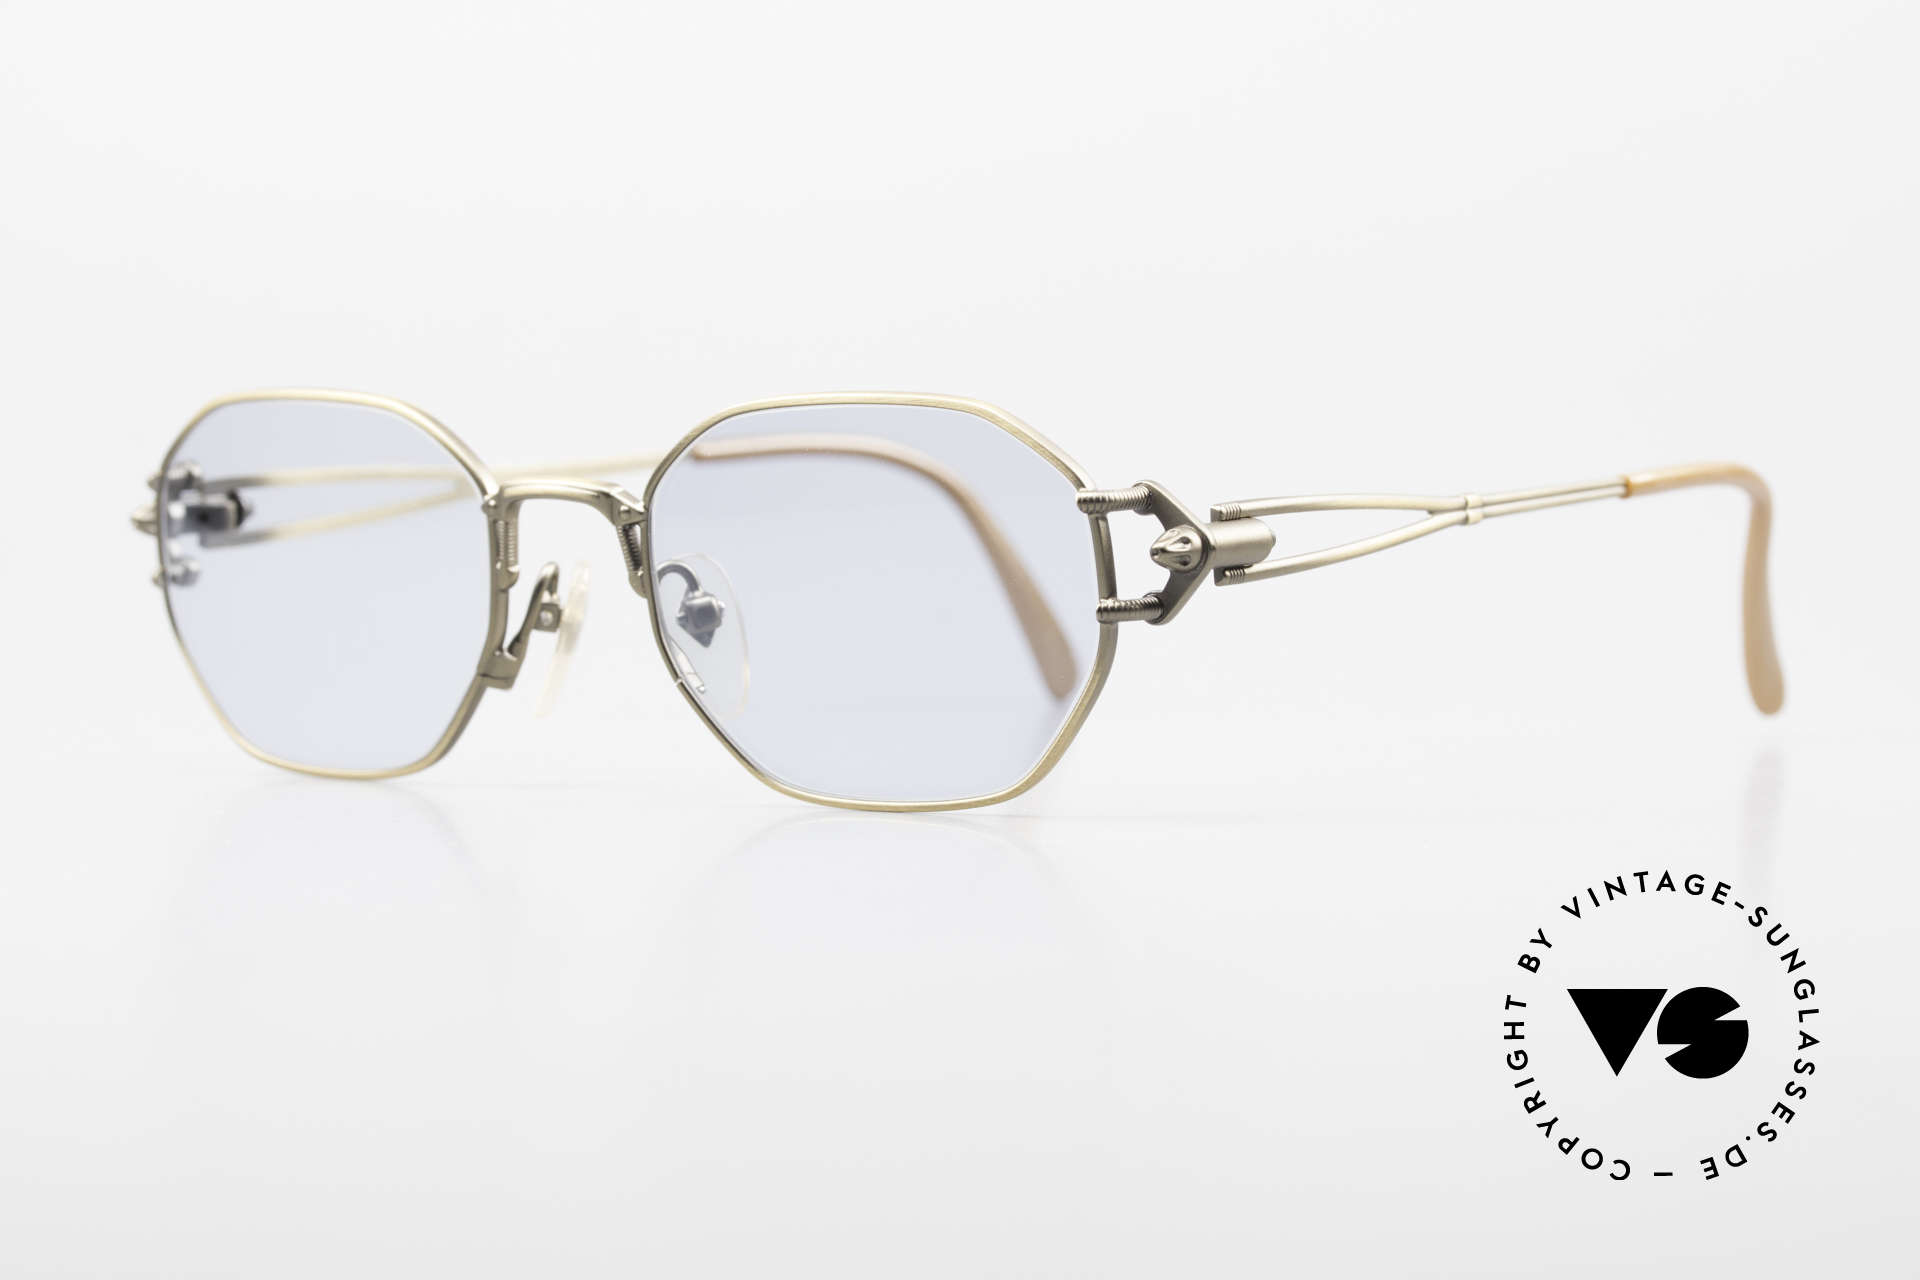 Jean Paul Gaultier 55-6106 Old 90's Designer Sunglasses, 'mechanical design' = distinctive GAULTIER collection, Made for Men and Women